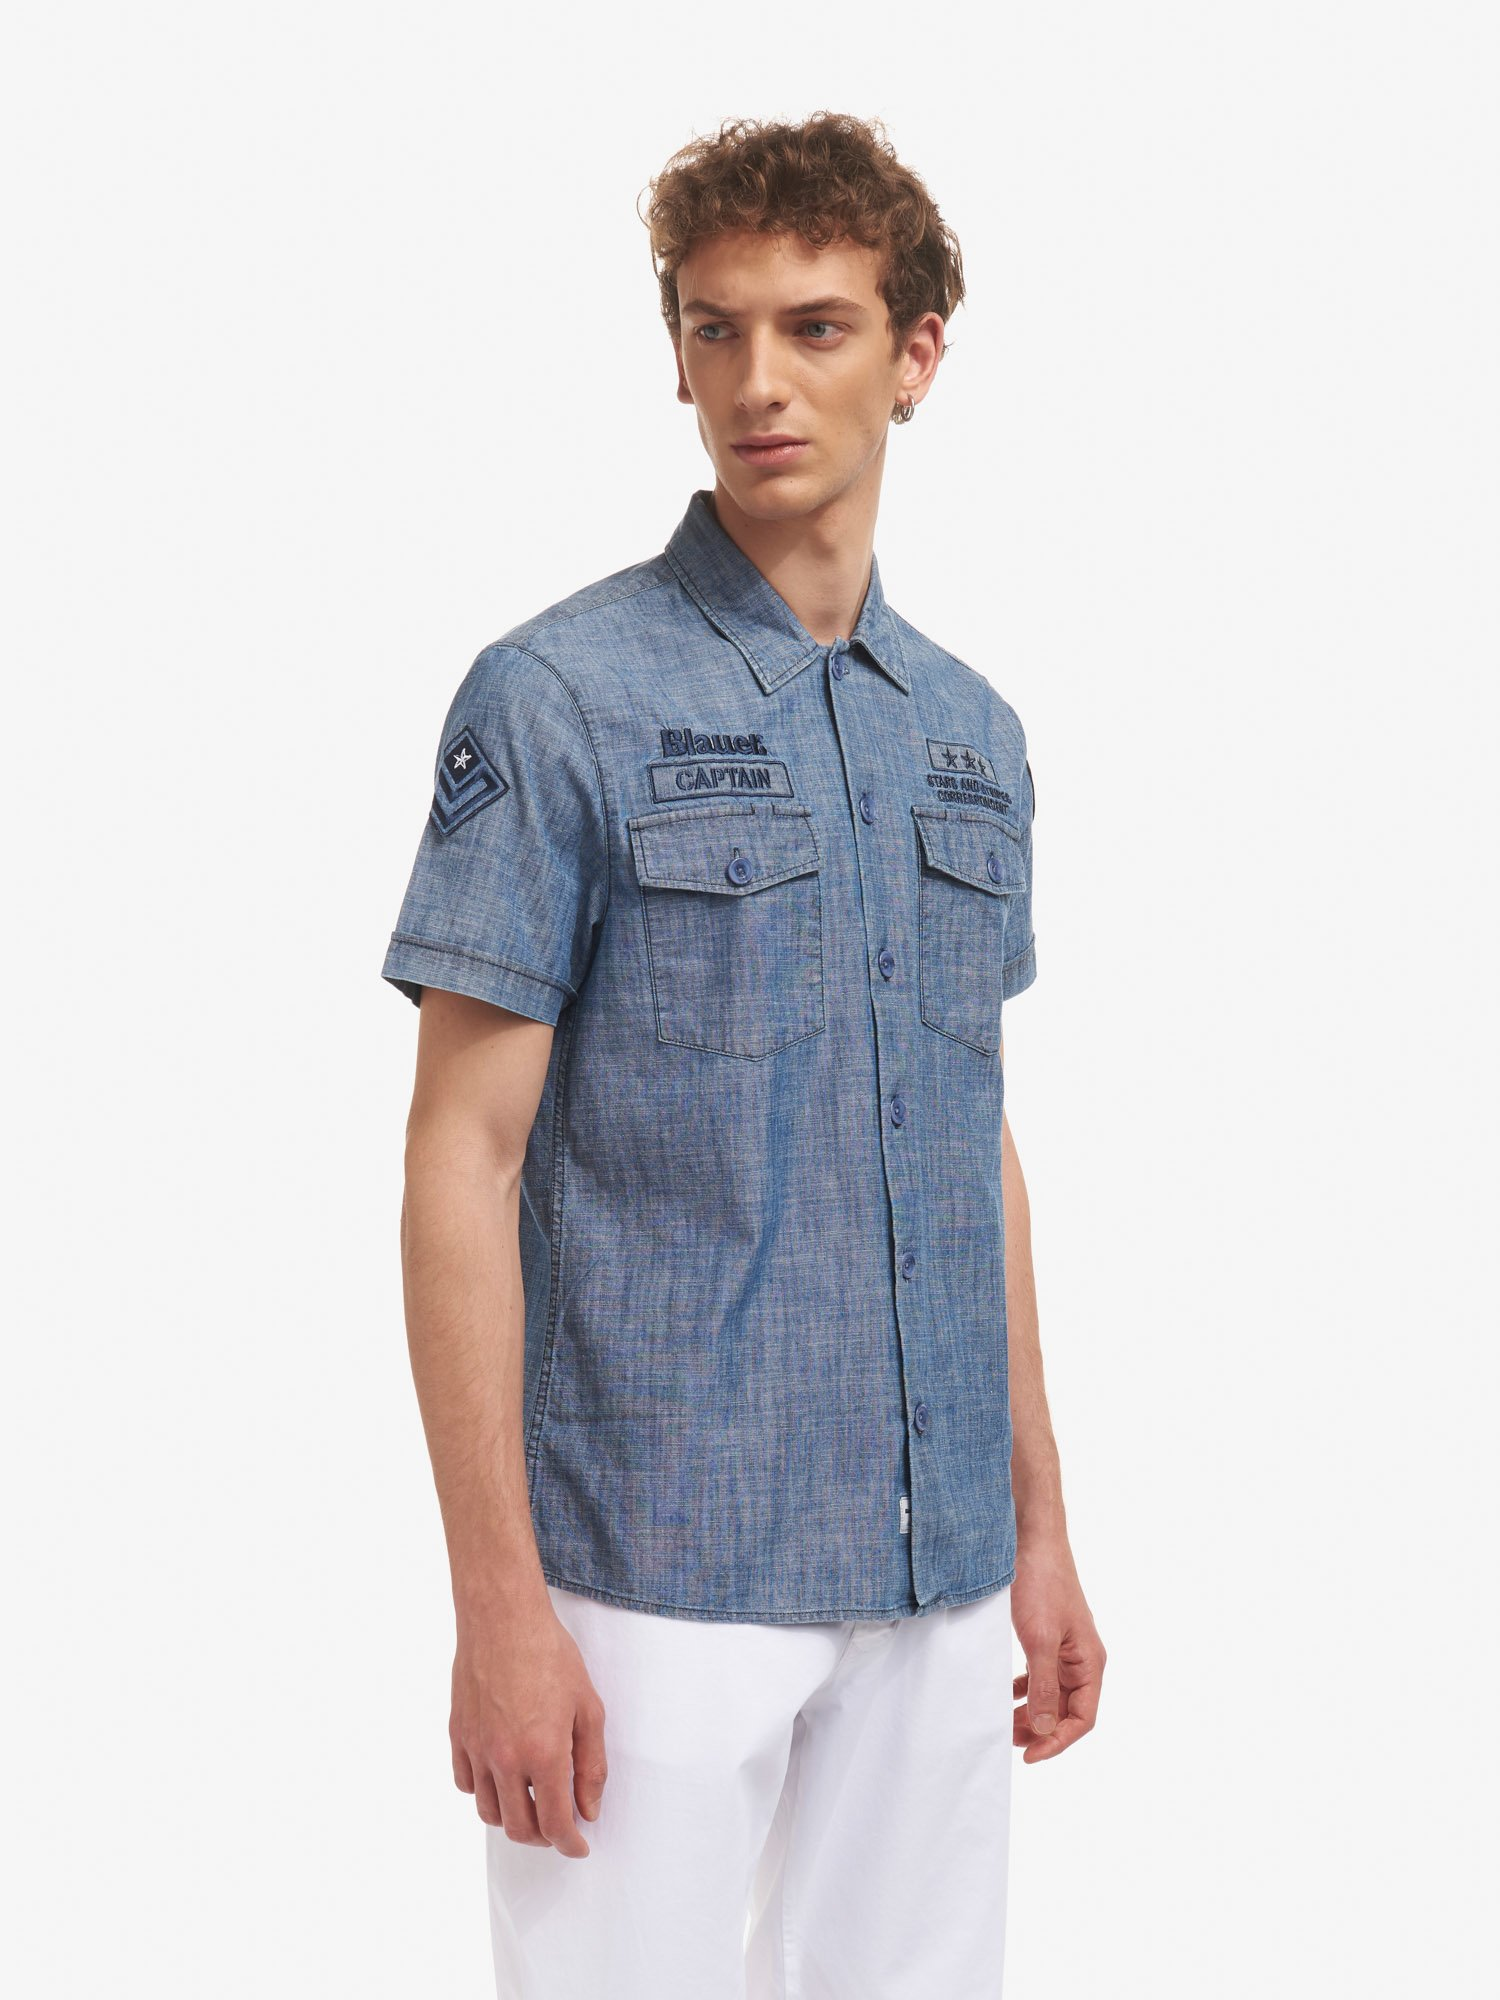 Blauer - CAMICIA CHAMBRAY CAPTAIN BLAUER - Stone Washed - Blauer